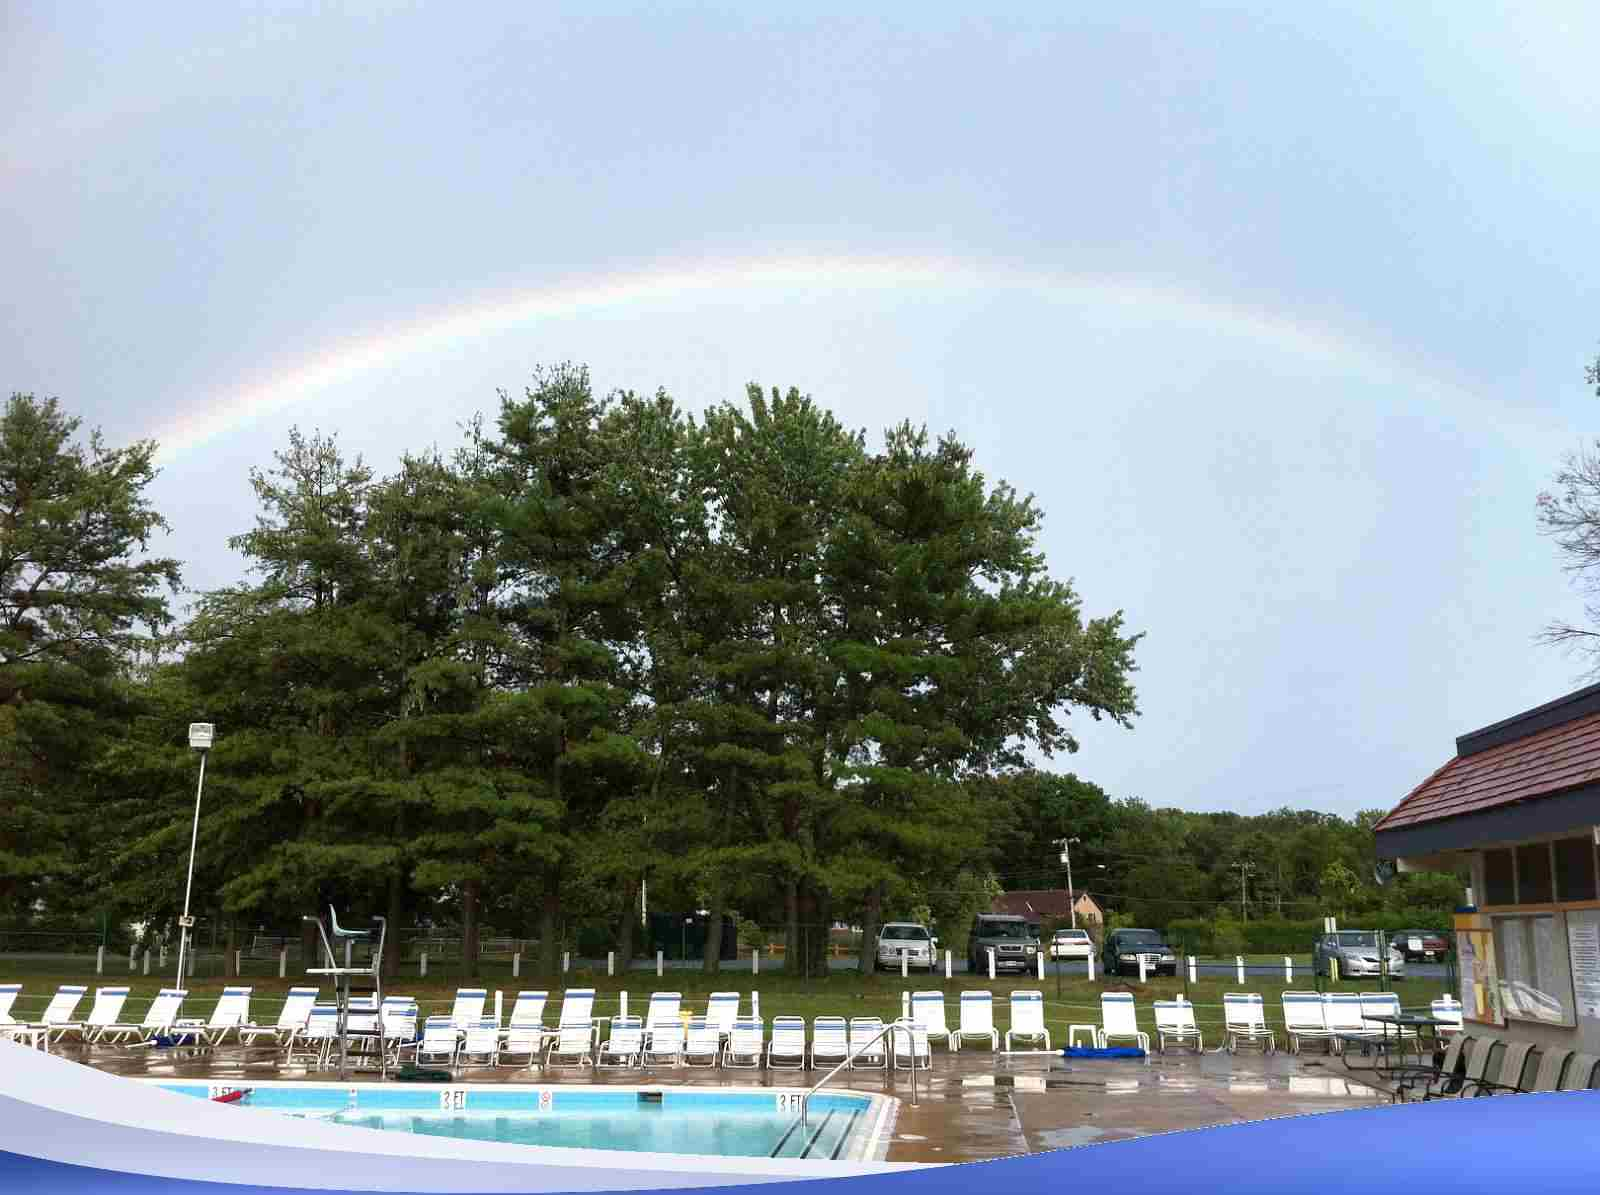 A rainbow over our pool. It's a sign that you should join.